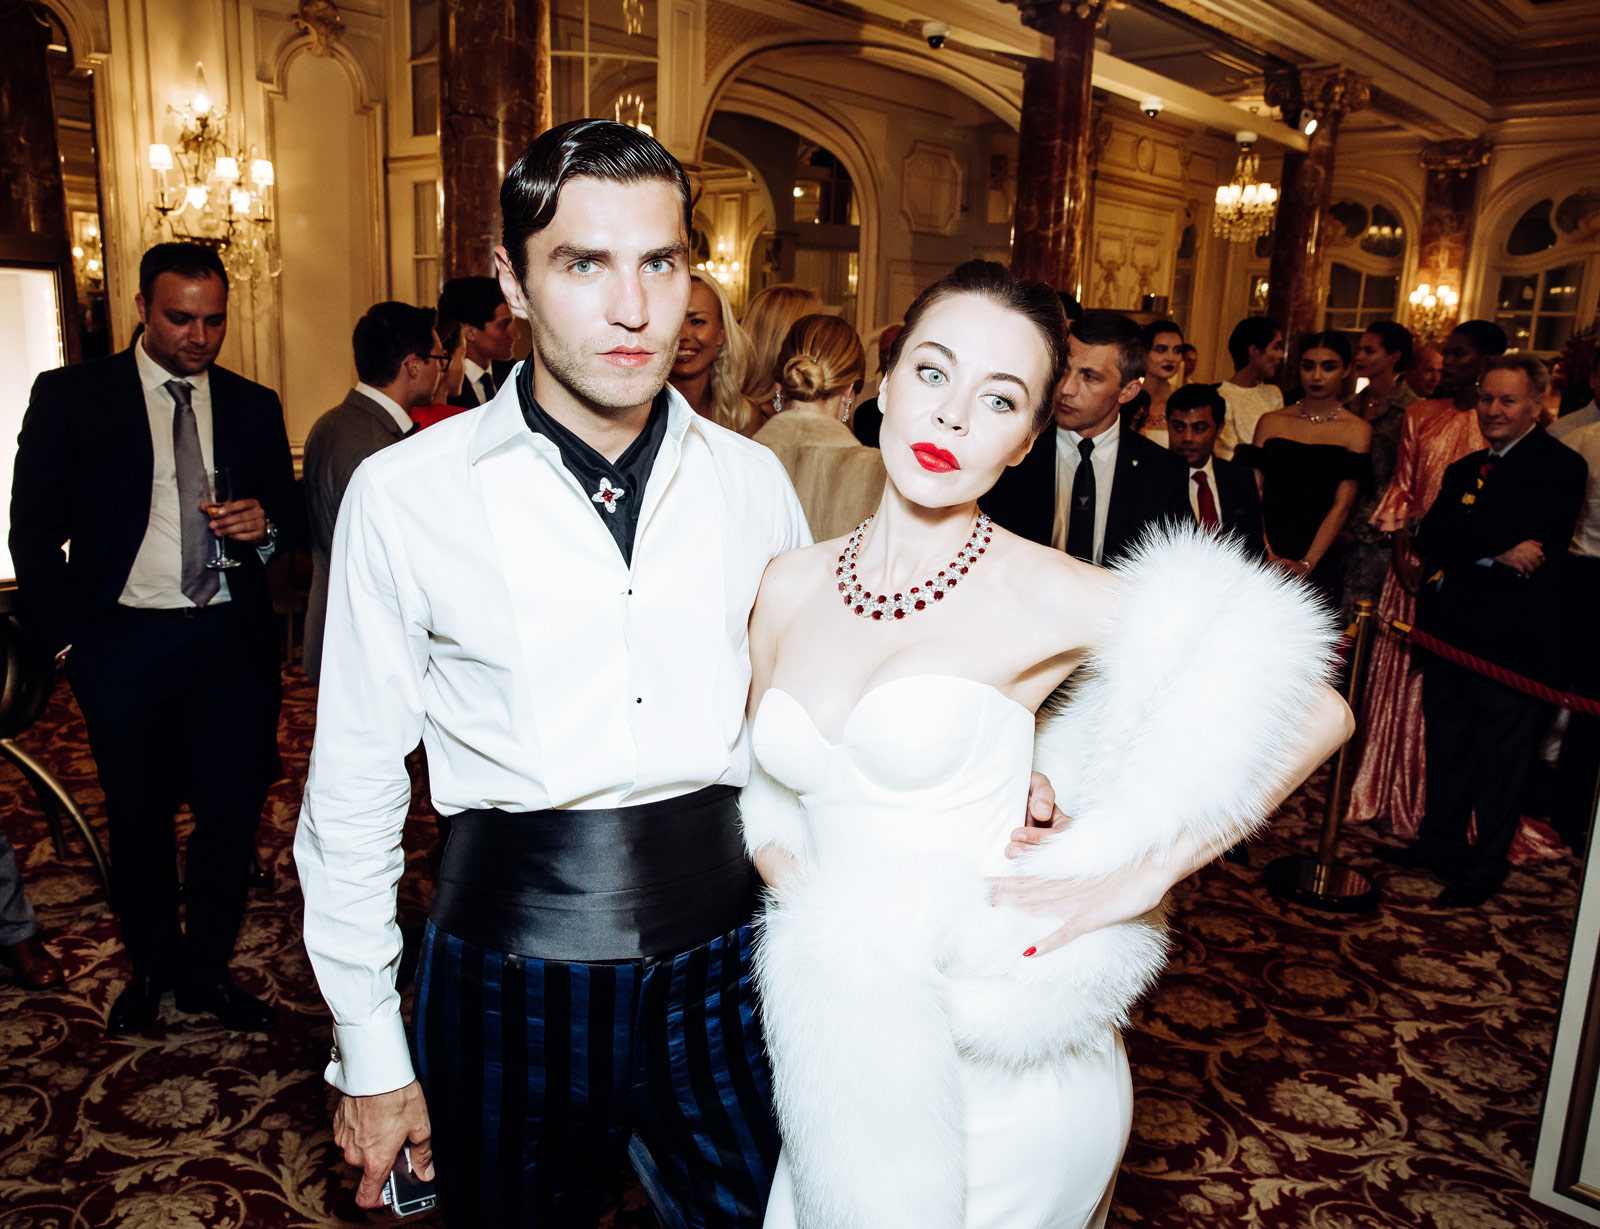 Frol Burimskiy and Ulyana Sergeenko wearing The Imperial Necklace with 50 Burmese Rubies and top quality diamonds